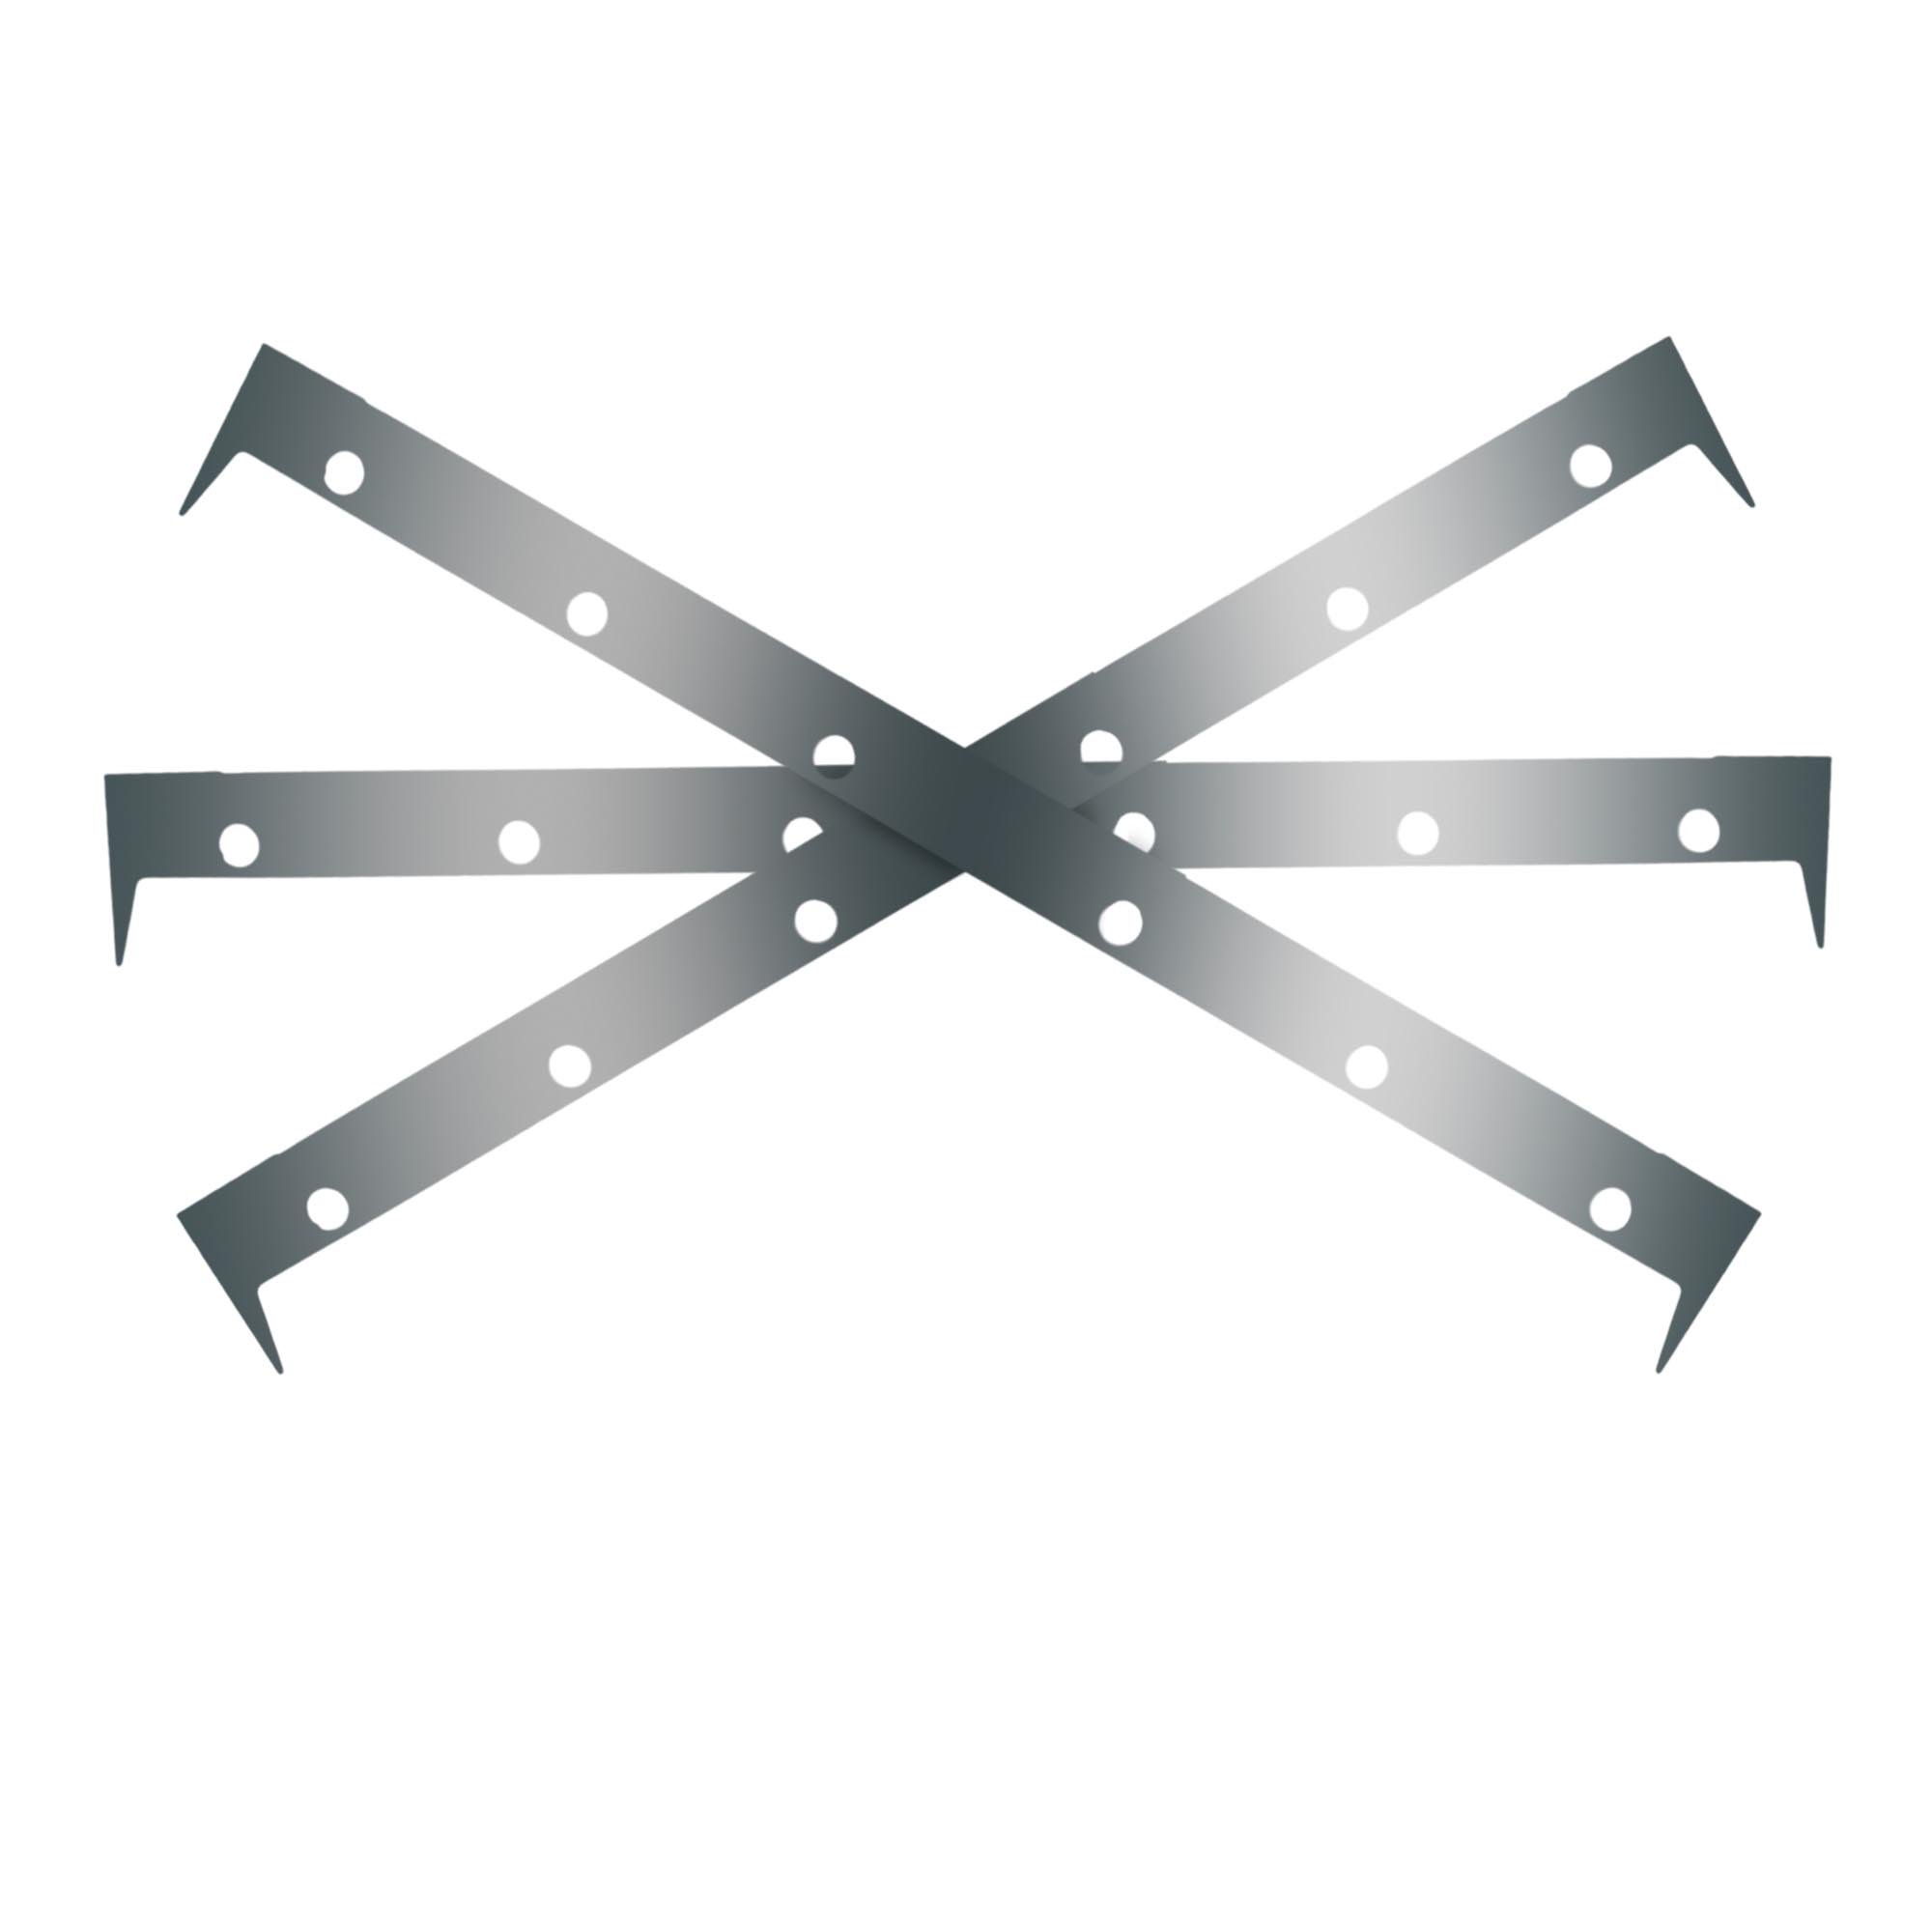 Stainless Steel Shim Sets are used for Stainless Steel Super Air Knives